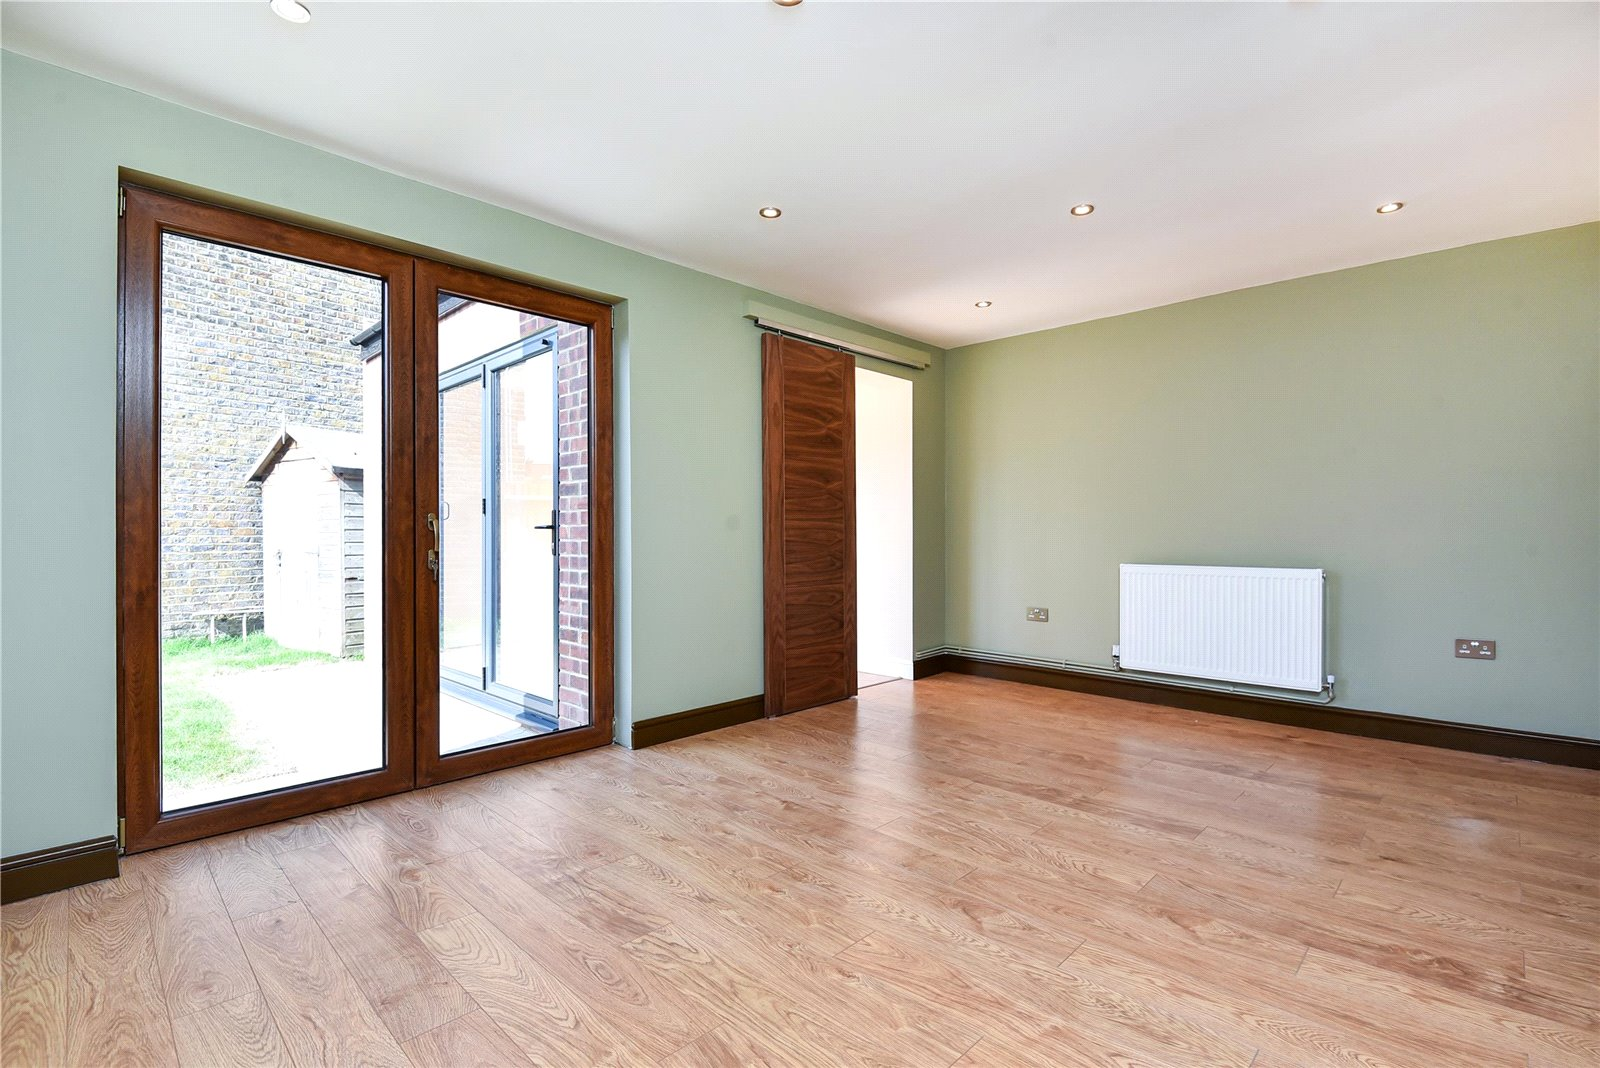 3 bed house for sale in Streatham  - Property Image 6